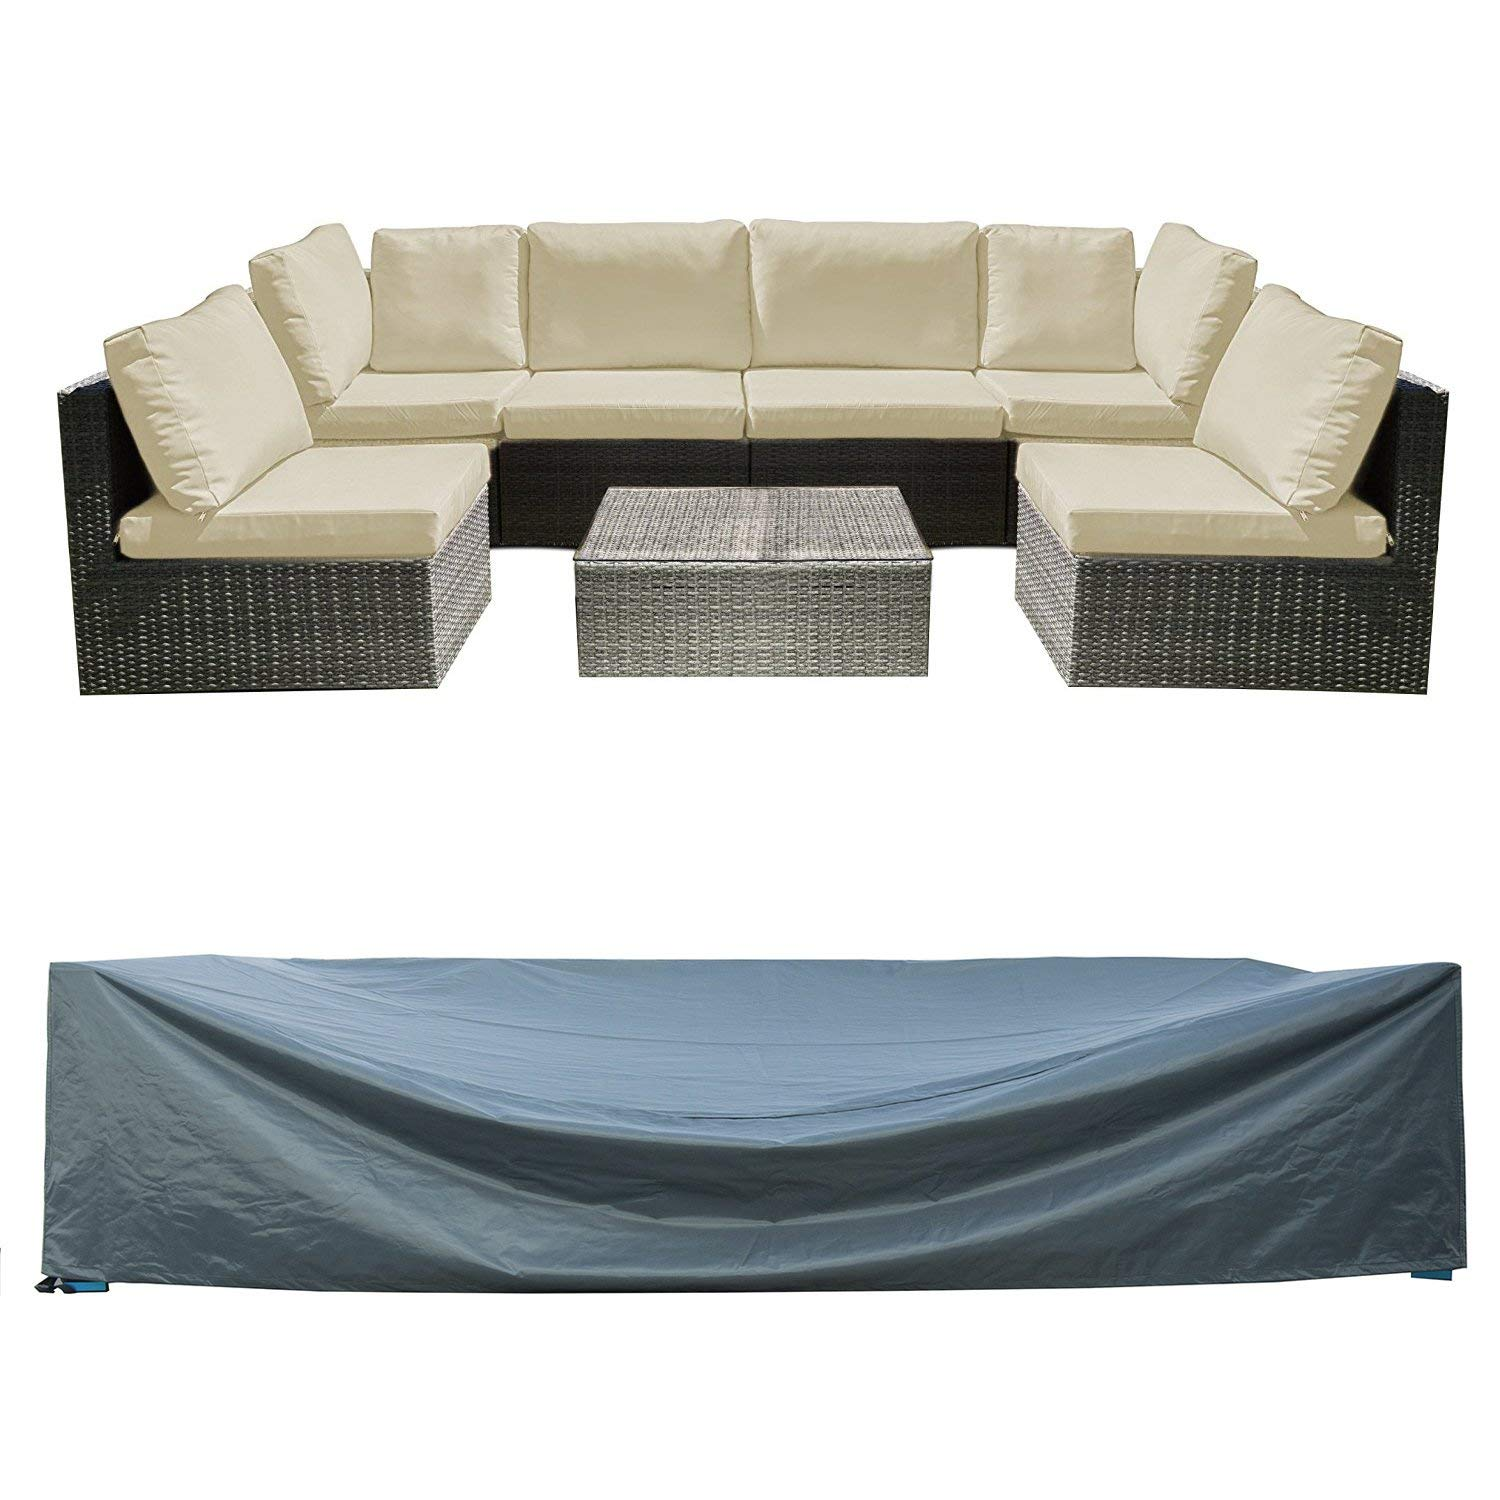 "Patio Sectional Sofa Set Cover Outdoor Furniture Covers Water Resistant Outdoor Table and Chair Covers Durable Heavy Duty 126"" L x 64"" W x 29"" H"